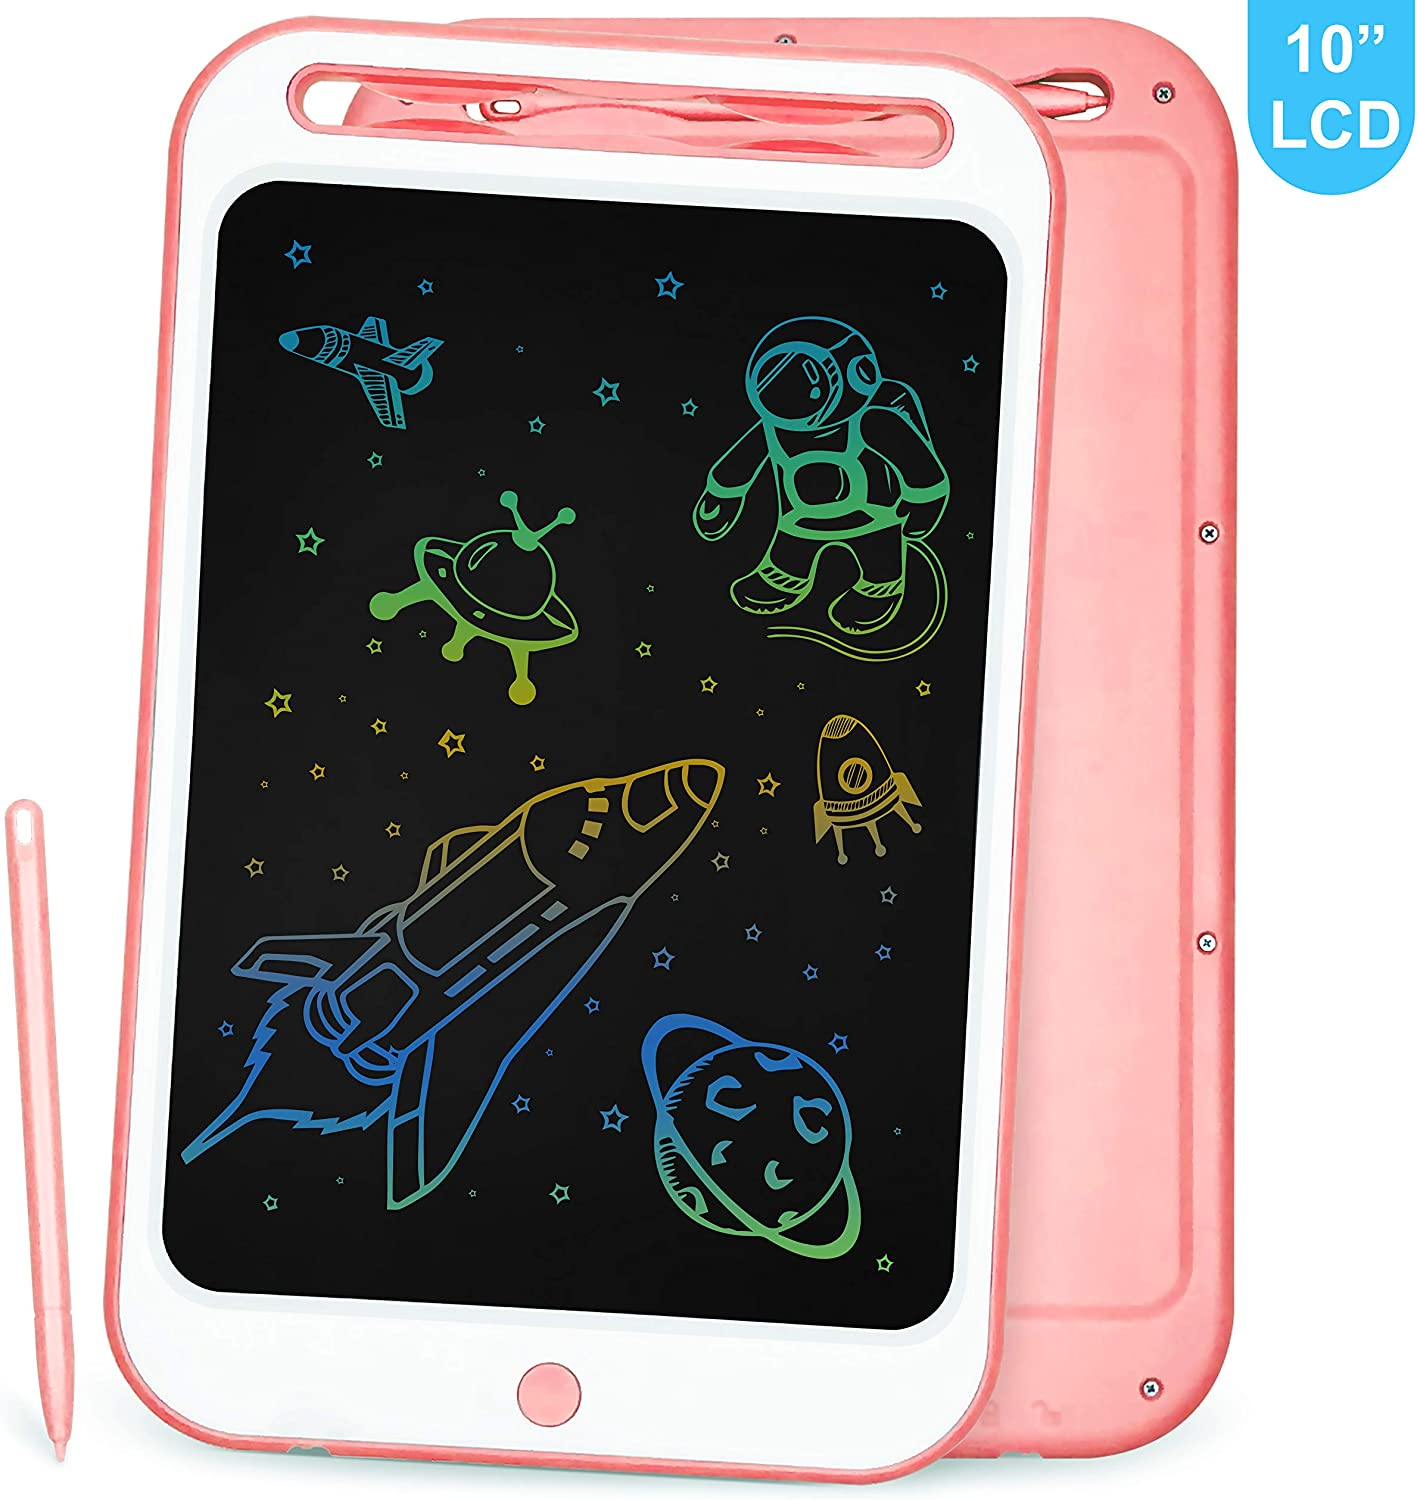 School LCD Writing Tablet Richgv 10 Inches Colorful Electronic Writing /& Drawing Doodle Board with Memory Lock Digital Writing Pad for Kids and Adults at Home Office